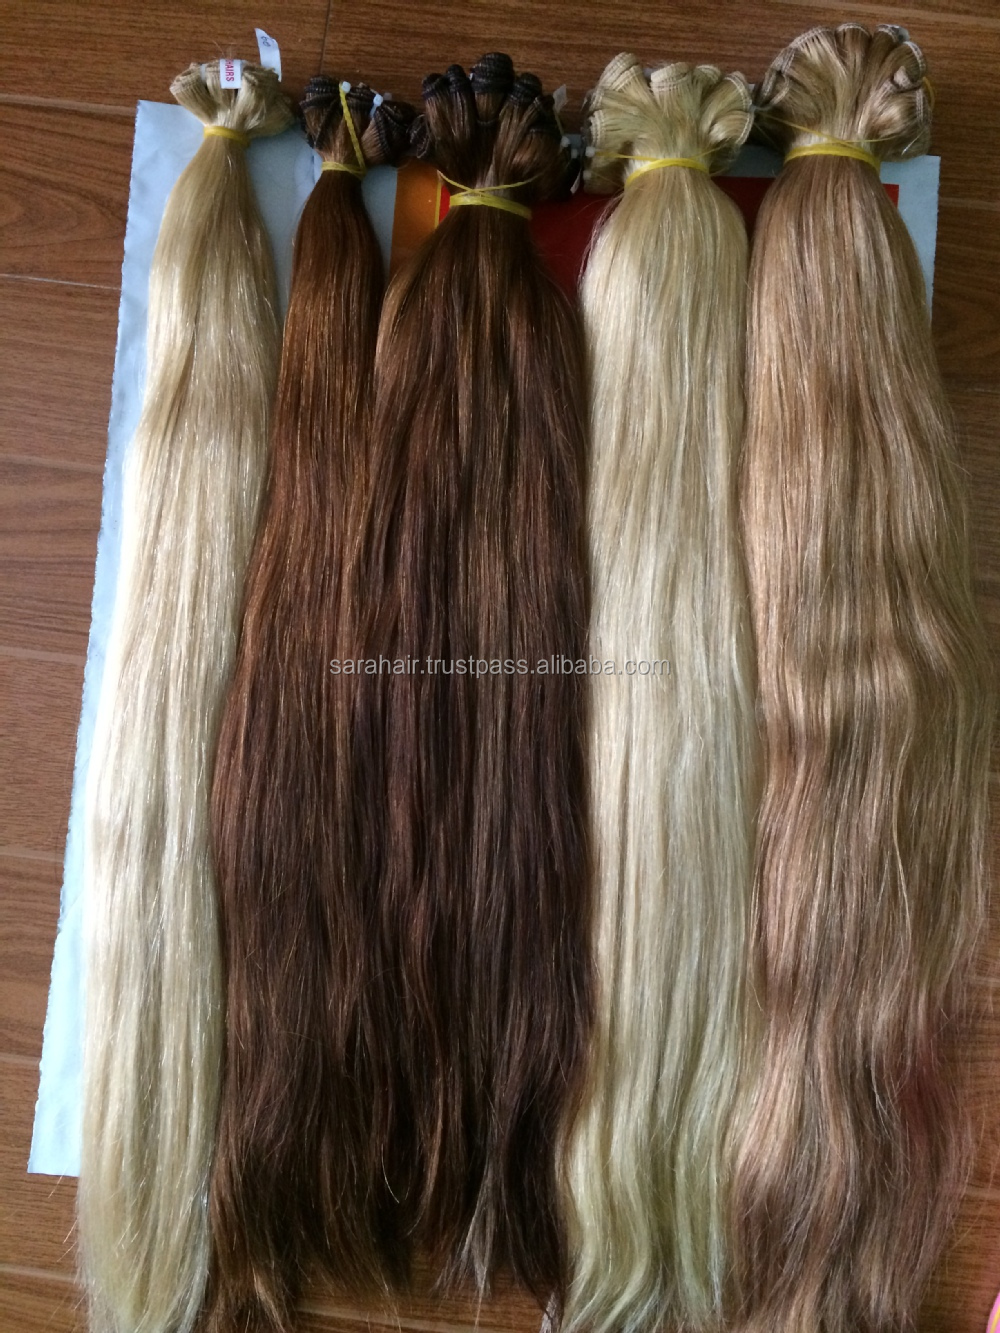 Own factory brand name good price human hair extension straight own factory brand name good price human hair extension straight weave color pmusecretfo Images